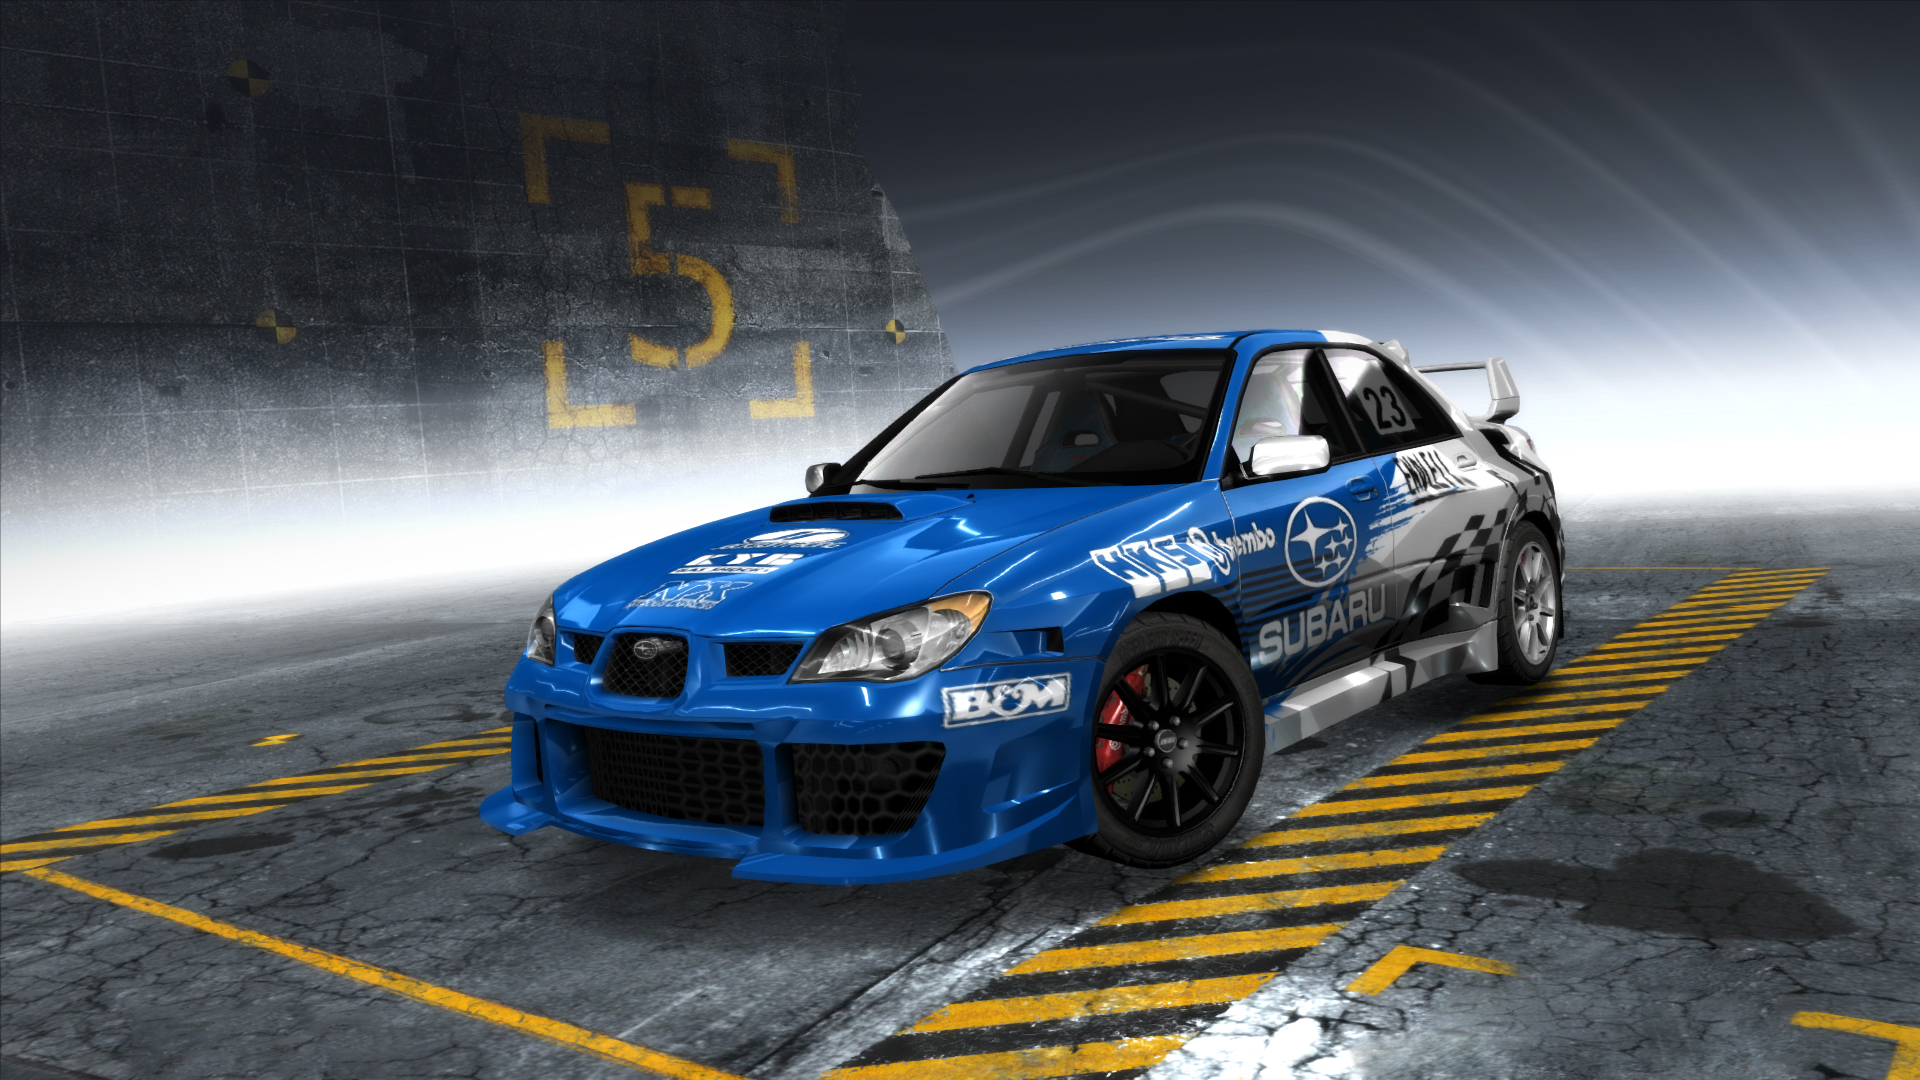 Subaru Impreza Wallpaper 52977 Movieweb